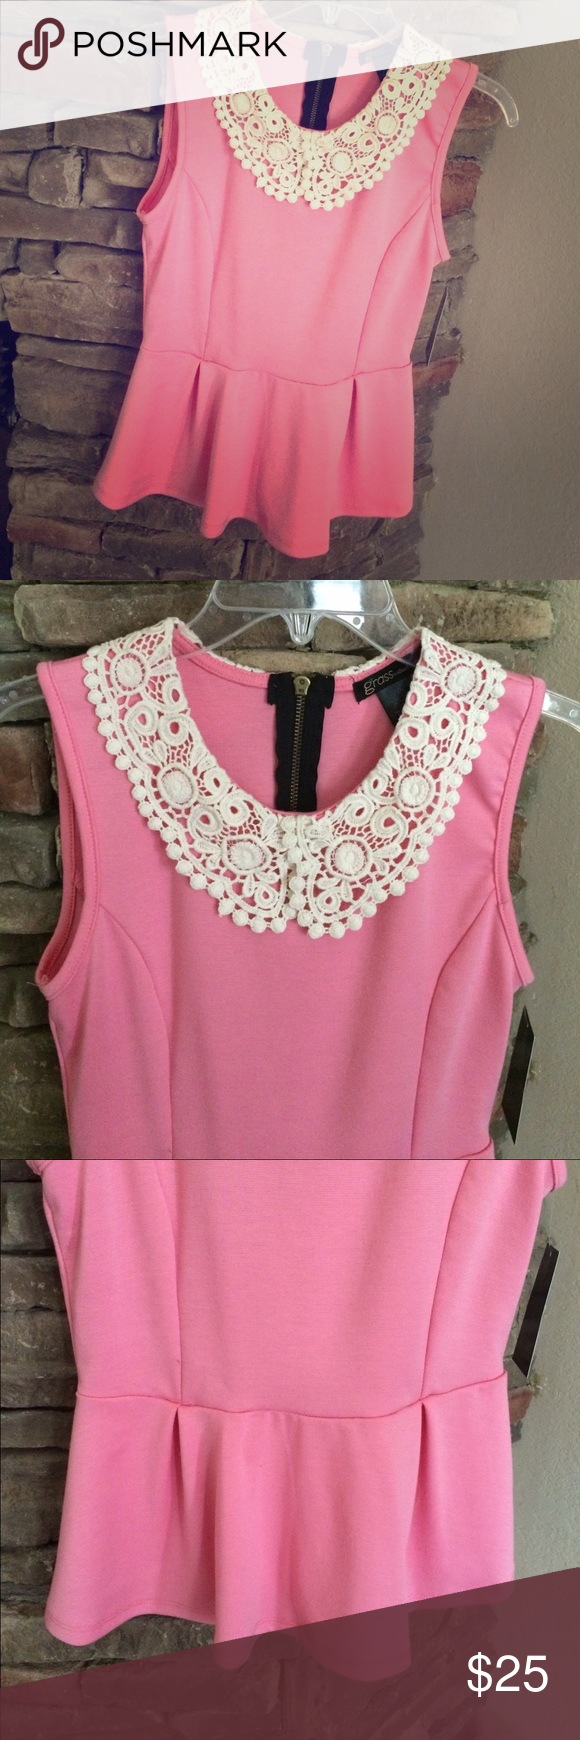 Pink Crochet Peter Pan Collar Peplum Adorable girly peplum top that is new with tags attached. Looks great with skinny black pants. Love the crochet detail! Exposed zipper at the top of the back. 67% polyester 28% rayon 5% spandex Grass Collection Tops